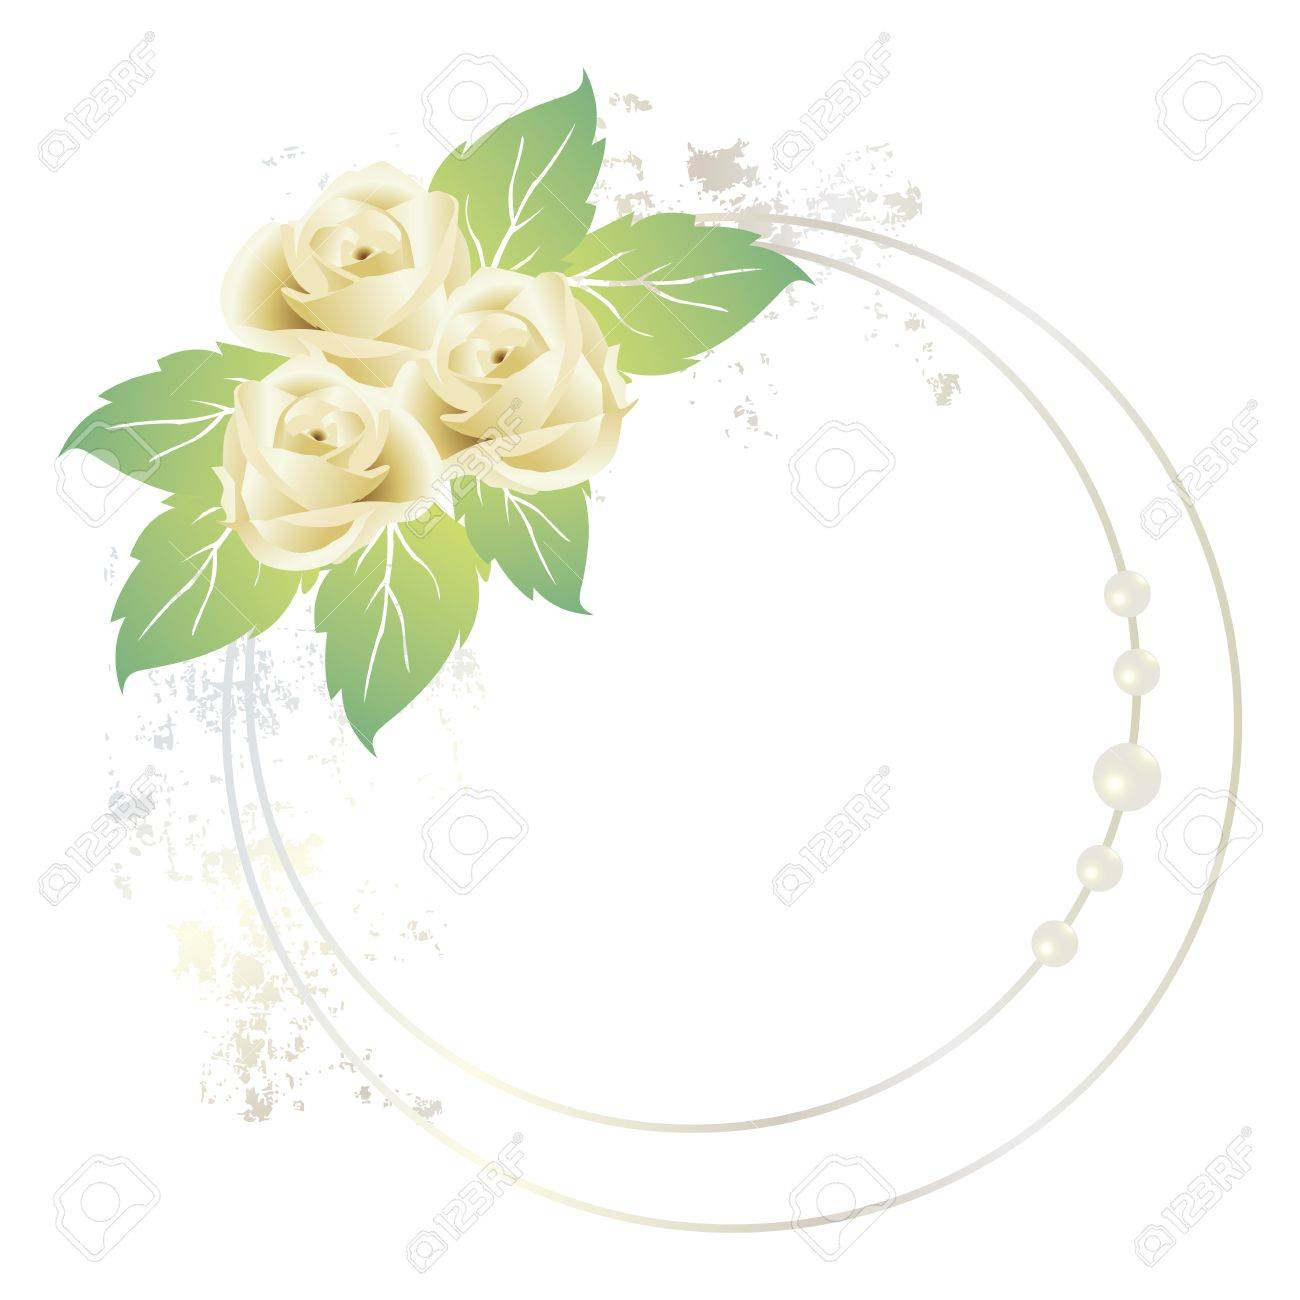 White Rose Frame Royalty Free Cliparts, Vectors, And Stock ...